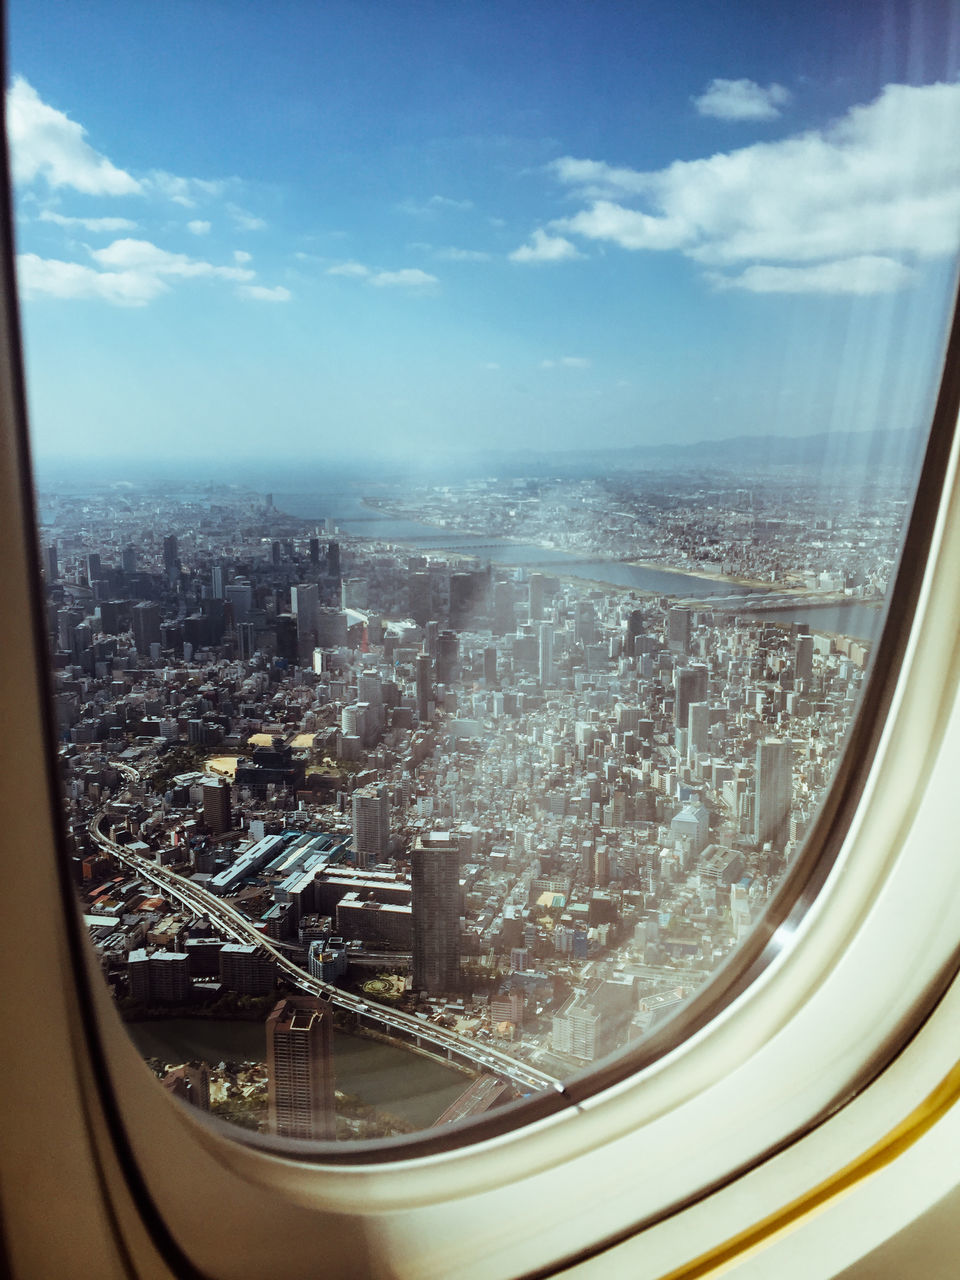 cityscape, city, architecture, aerial view, sky, crowded, building exterior, built structure, transportation, landscape, cloud - sky, skyscraper, outdoors, airplane, day, airplane wing